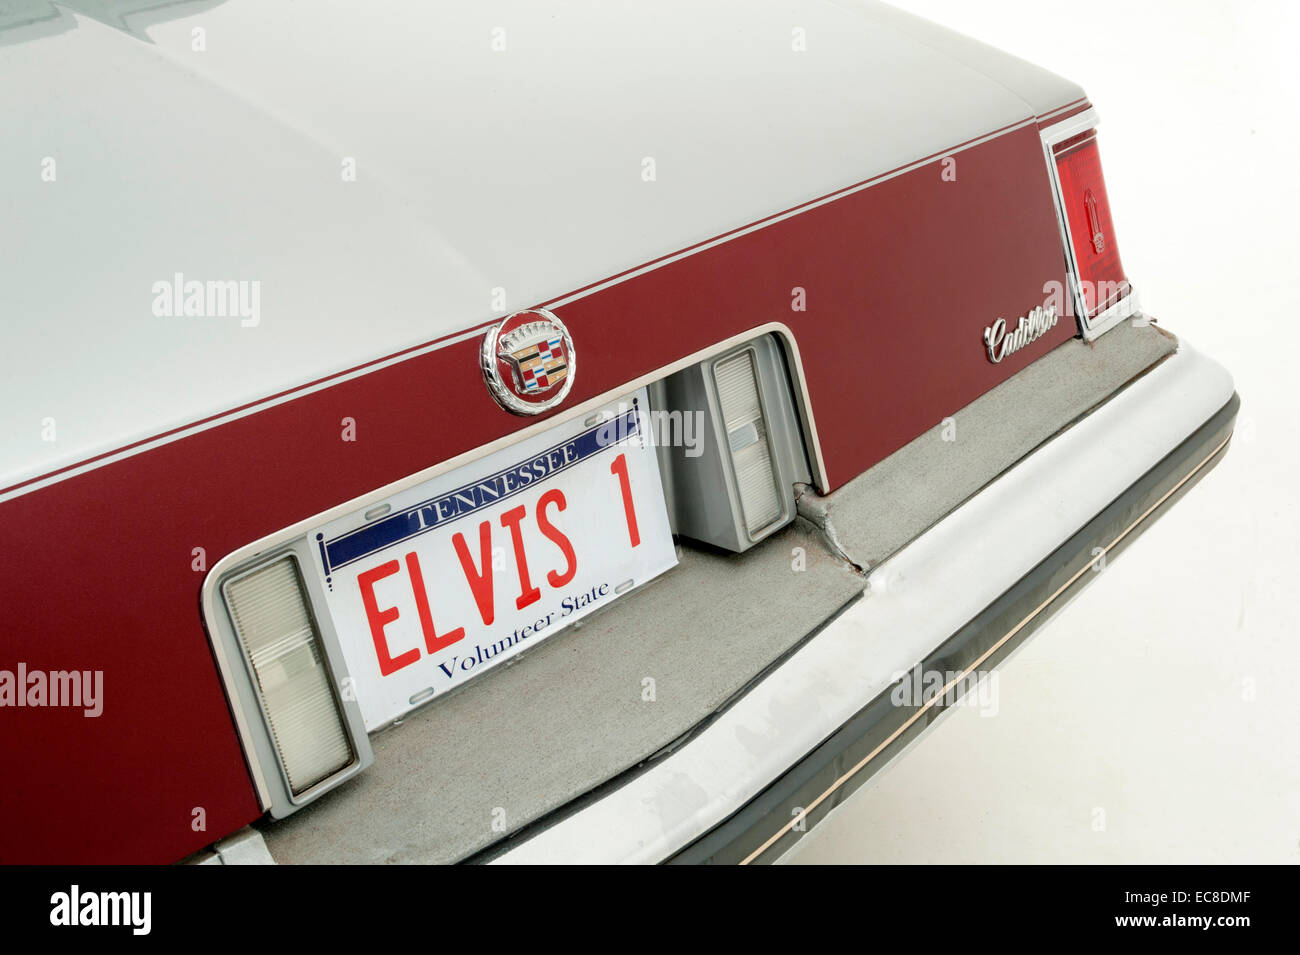 1976 Cadillac Seville owned by Elvis Presley - Stock Image